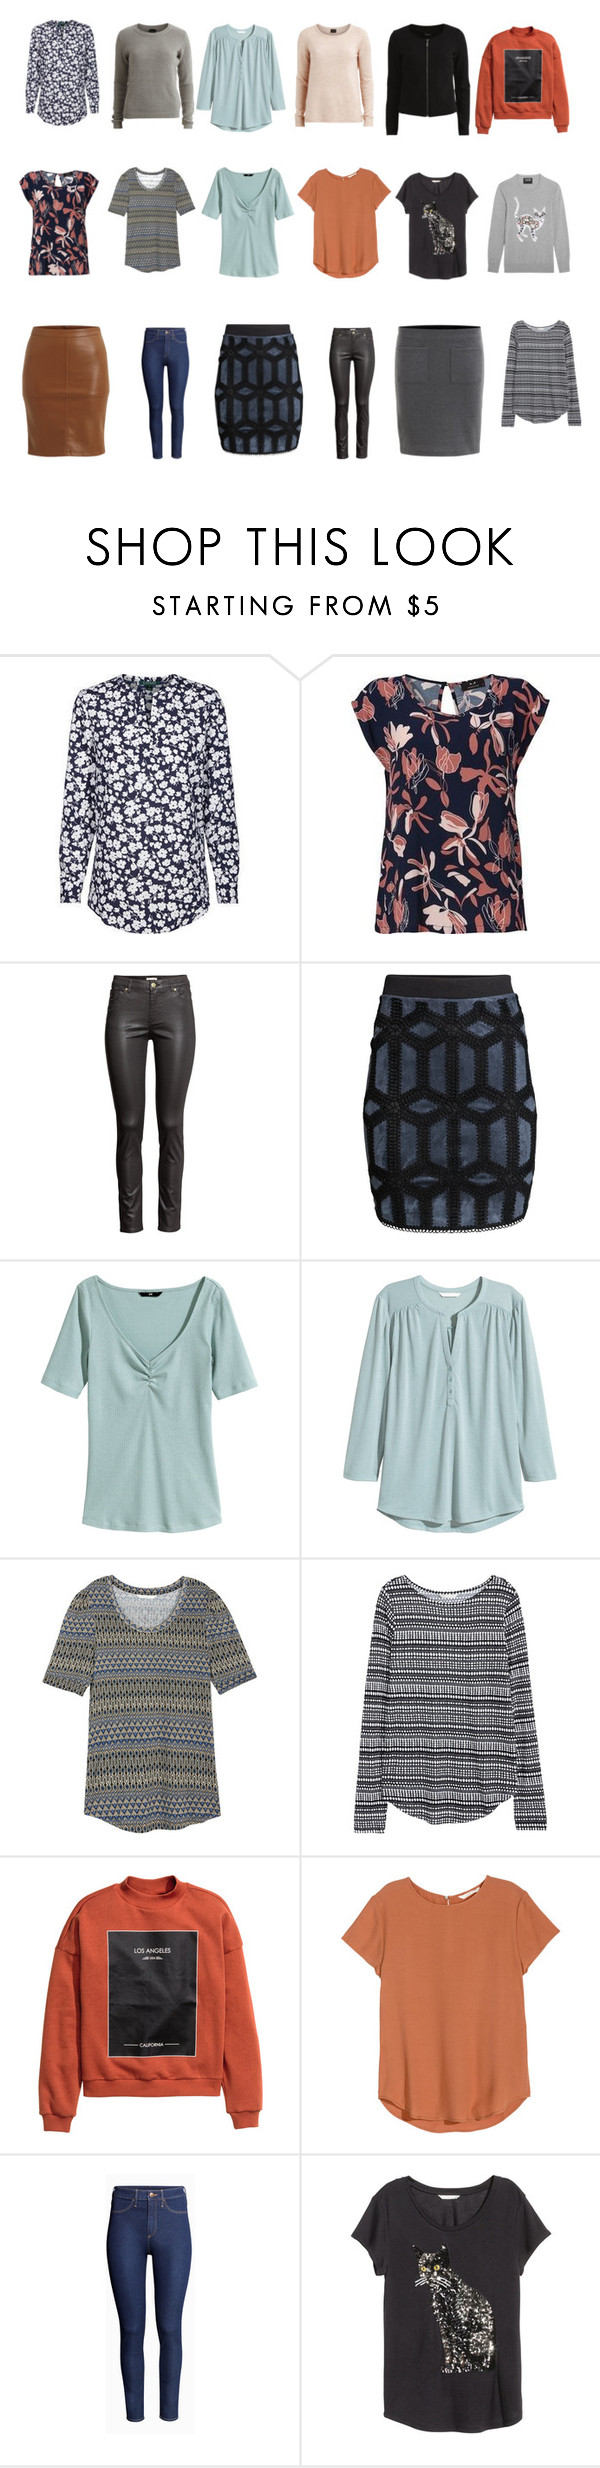 """Capesul Wardrobe spring 2016 interest"" by lone-haure-norrevang on Polyvore featuring VILA, H&M and Markus Lupfer"